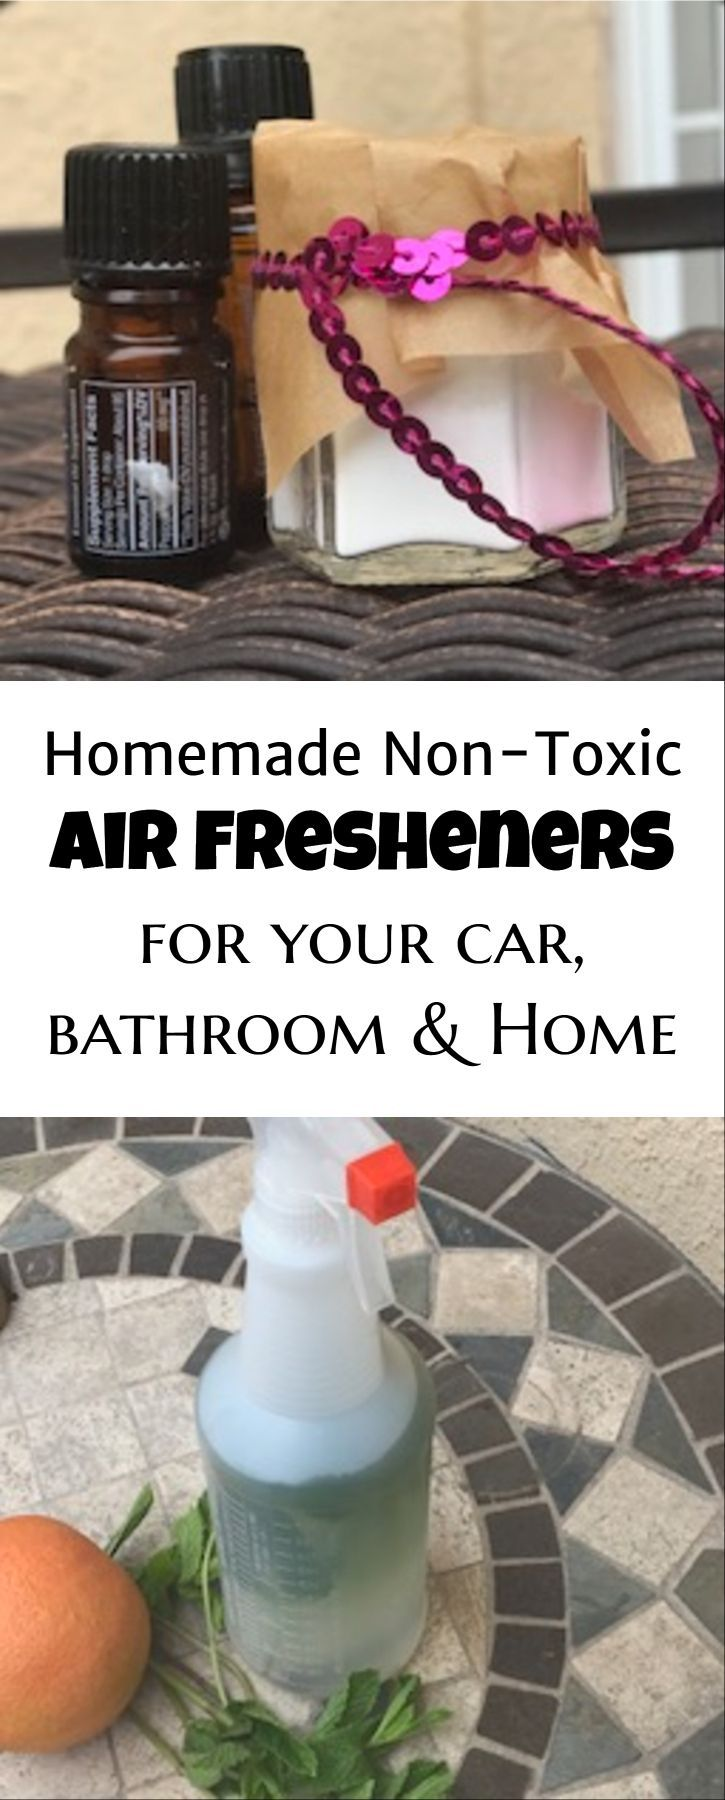 2 Homemade Non Toxic Air Fresheners For Bathroom Car Air